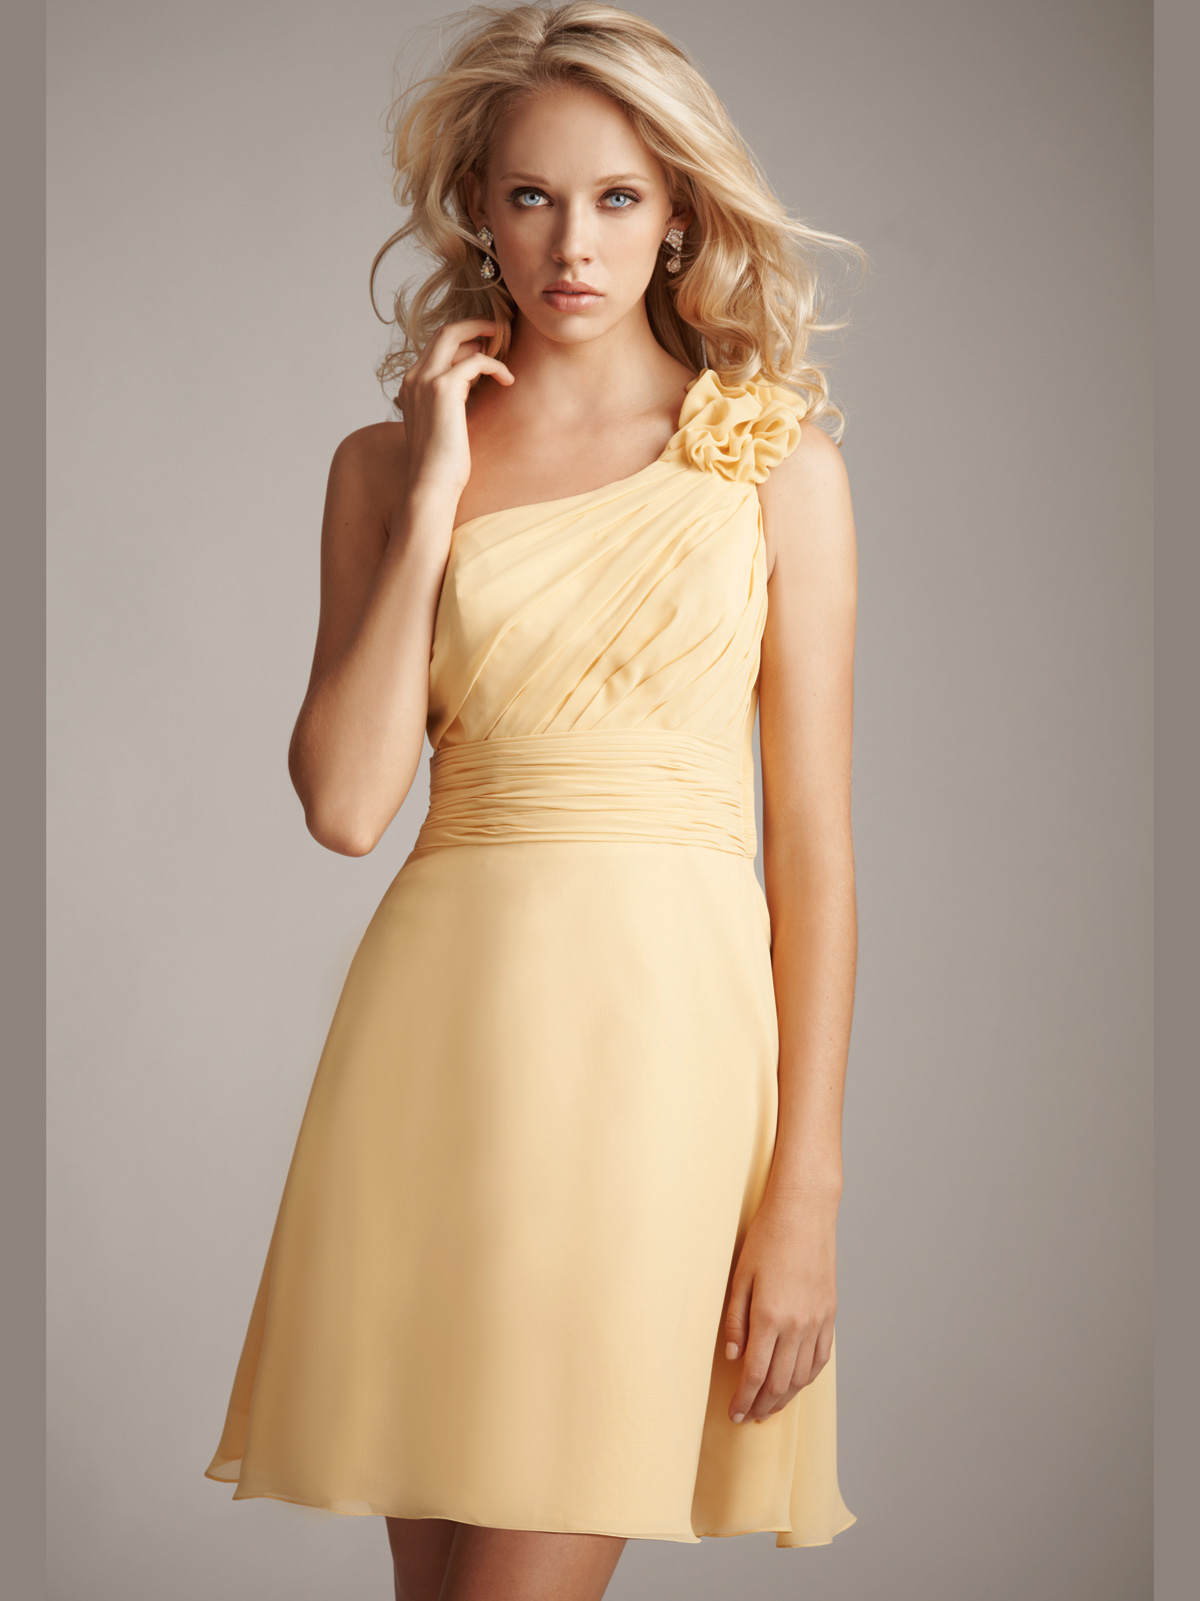 Short one shoulder bridesmaid dresses short one shoulder bridesmaid dresses ombrellifo Gallery